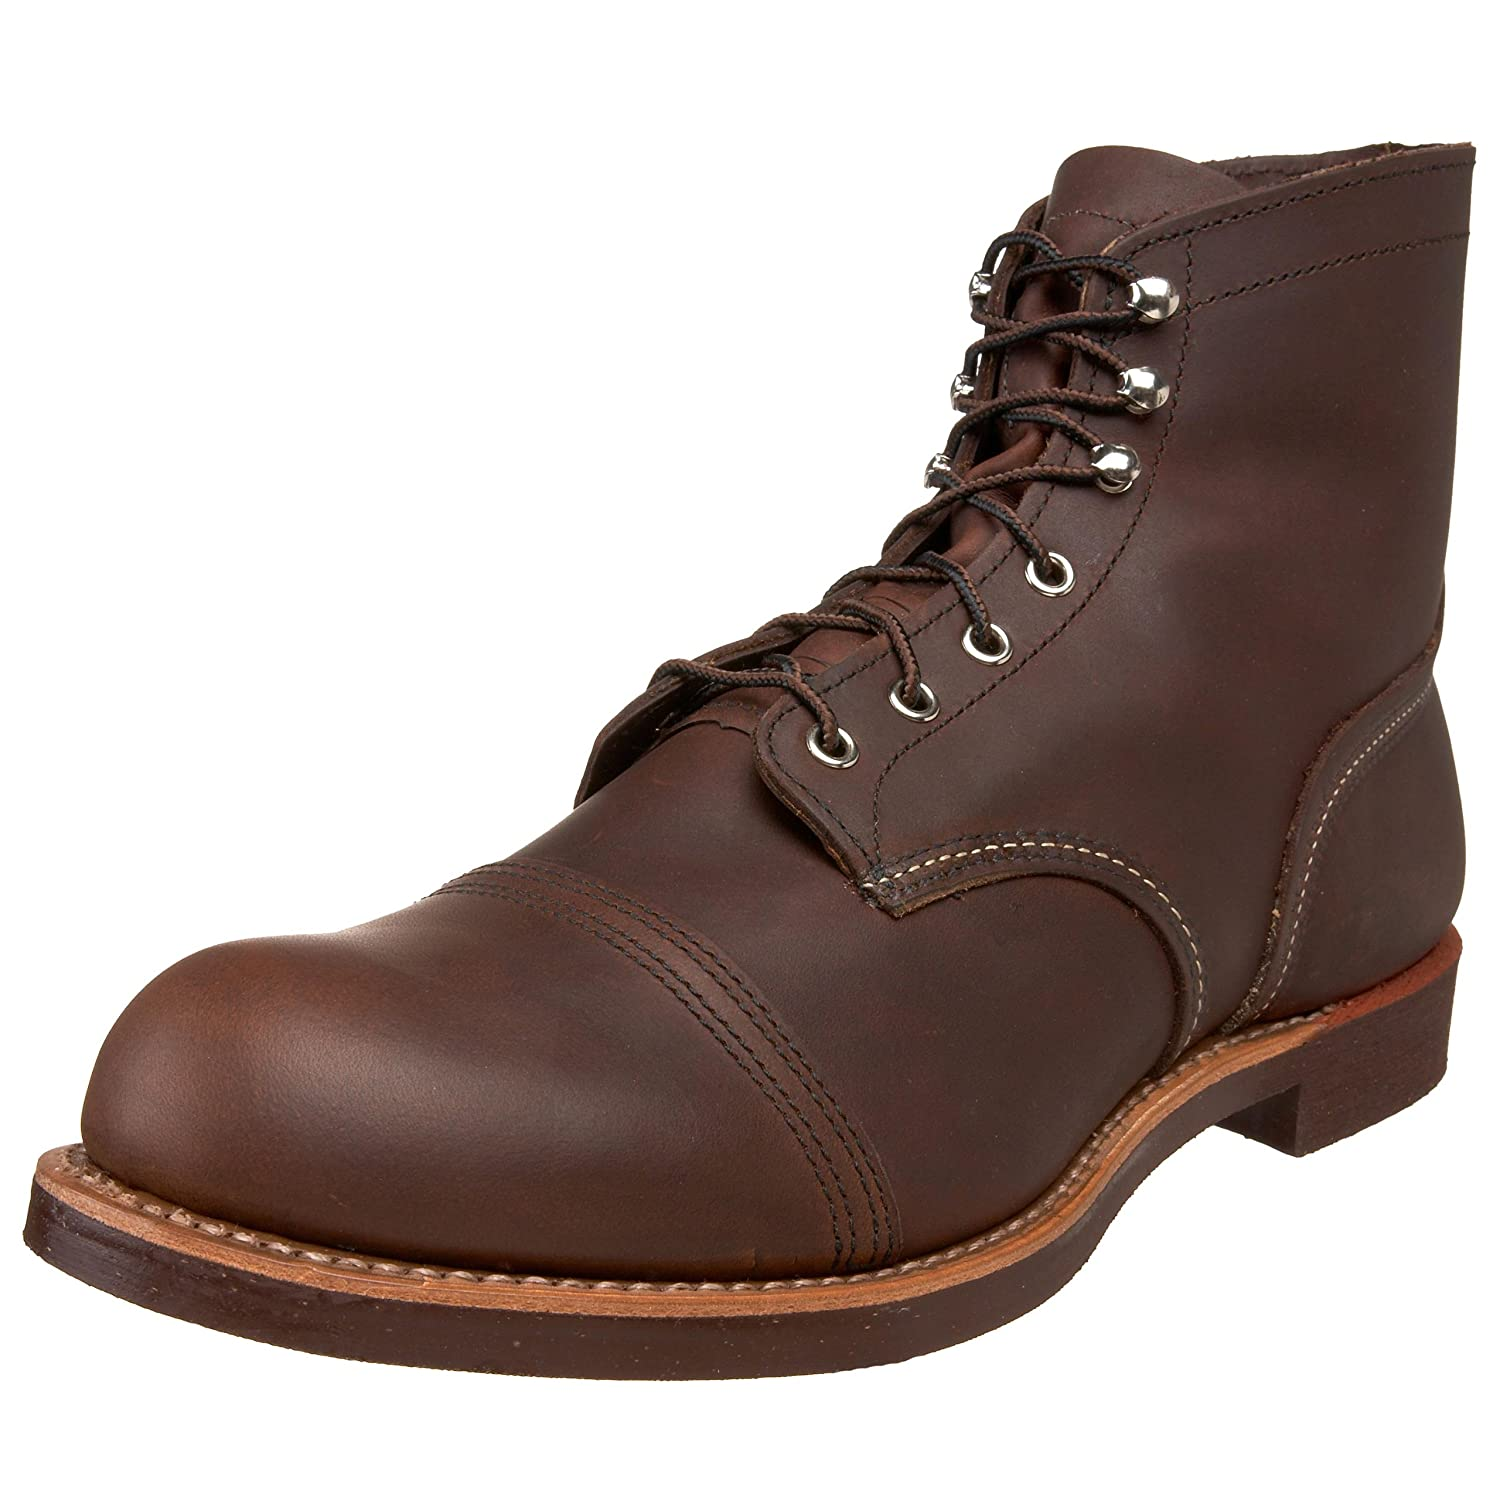 1920s Style Mens Shoes | Peaky Blinders Boots Red Wing Heritage Iron Ranger 6-Inch Boot $239.96 AT vintagedancer.com